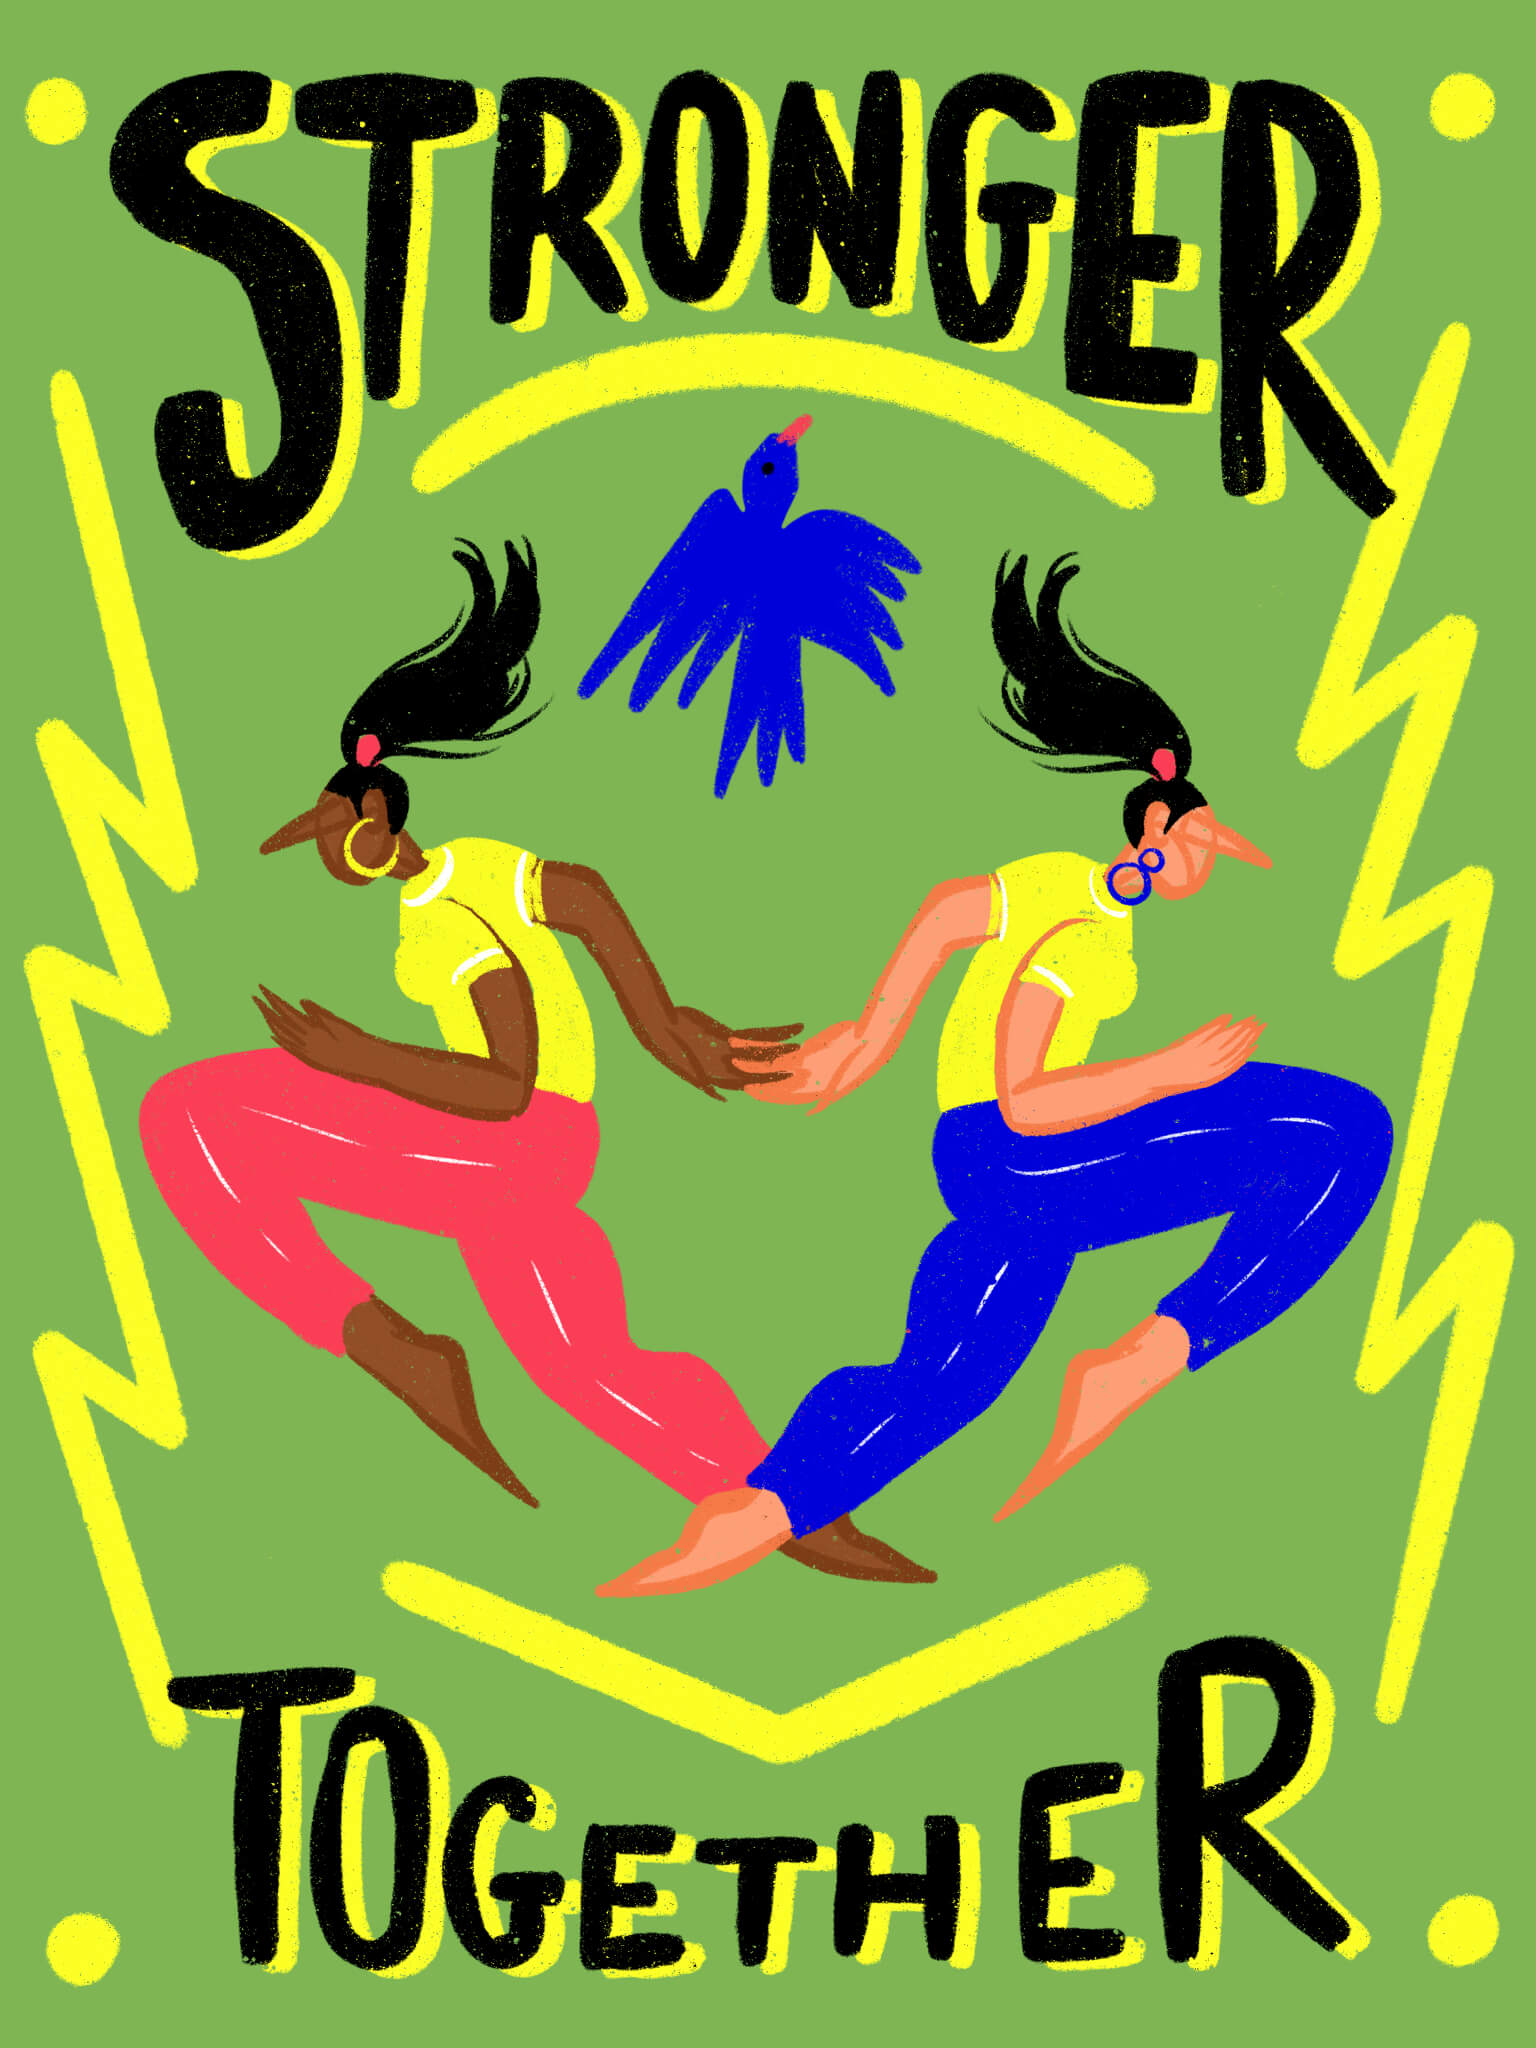 StrongerTogether main image